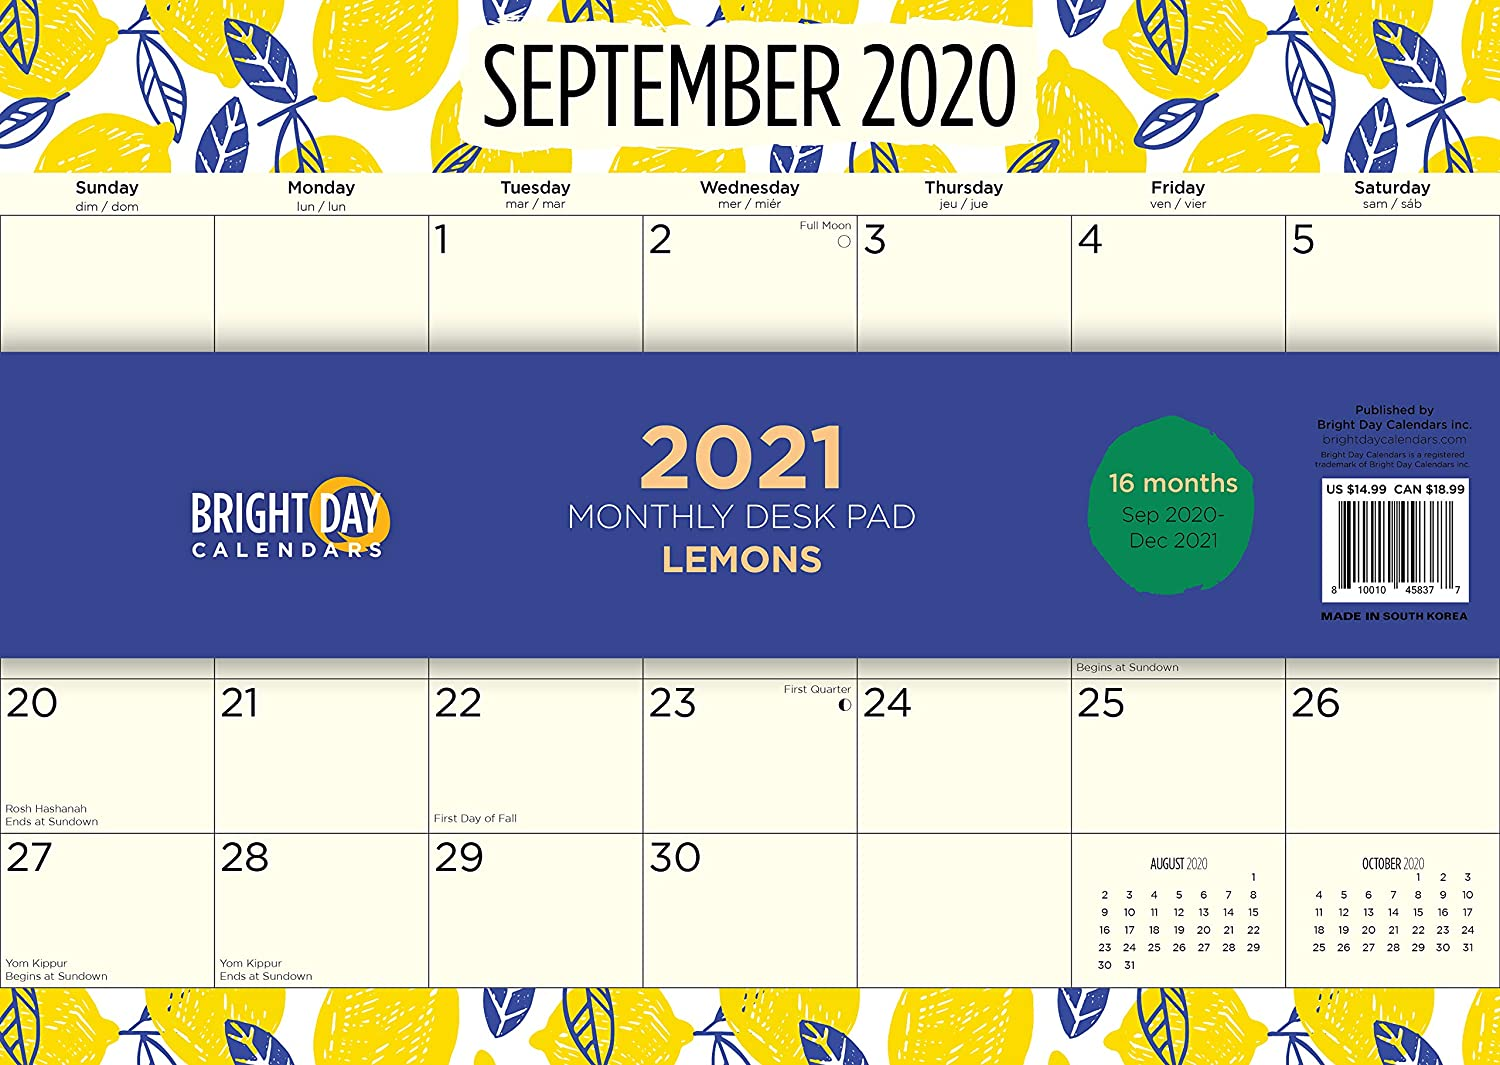 2021 Desk Pad Office Blotter Calendar by Bright Day, 16 Month 15.5 x 11 Inch, Cute Colorful Planner… (Lemons)